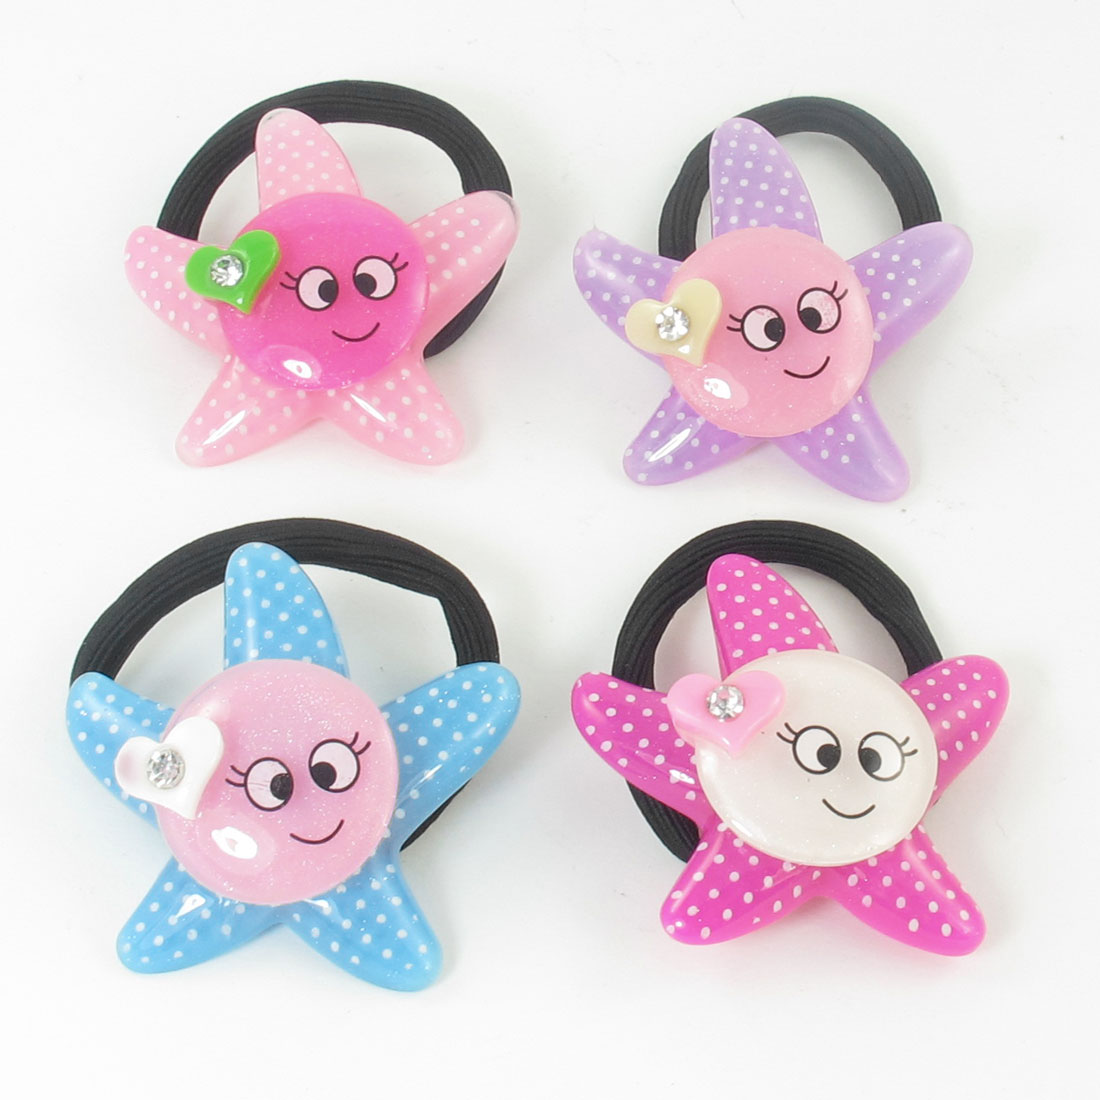 4pcs Colored Smile Face Decor Stretchy Rubber Ponytail Holder for Girls